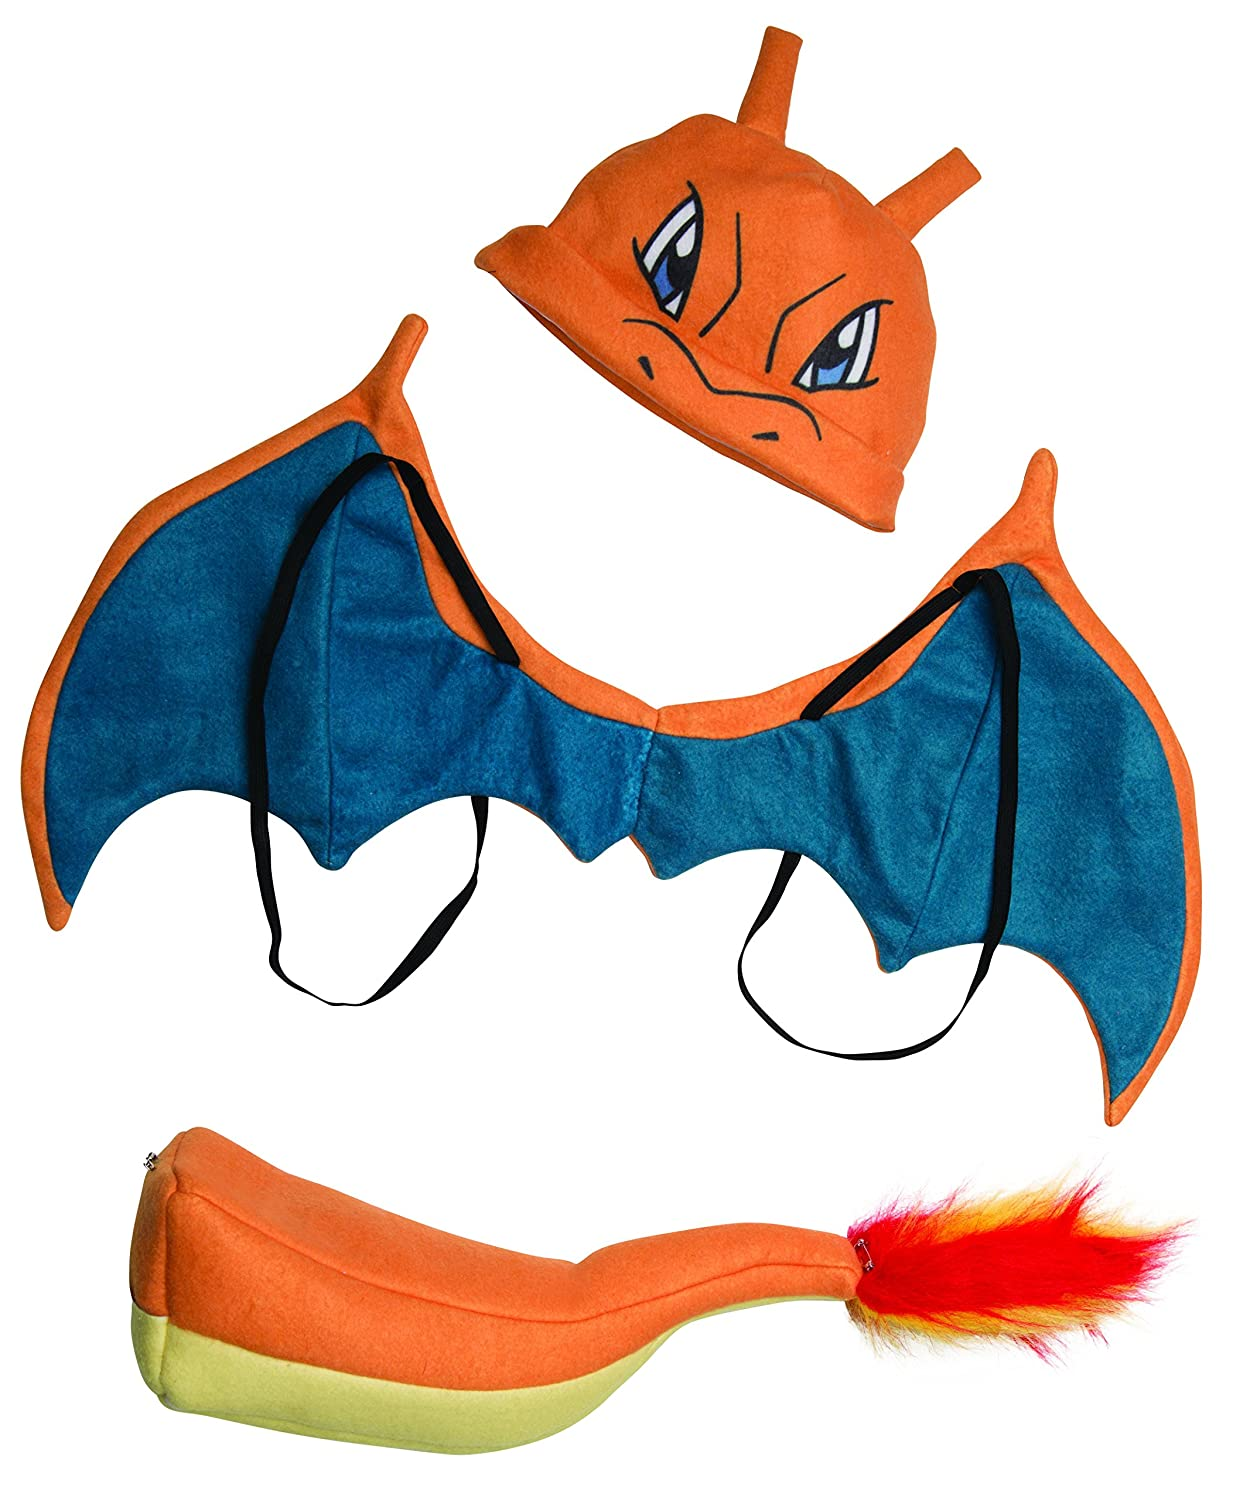 Amazon.com Rubieu0027s Costume Pokemon Charizard Child Costume Kit Toys u0026 Games  sc 1 st  Amazon.com & Amazon.com: Rubieu0027s Costume Pokemon Charizard Child Costume Kit ...